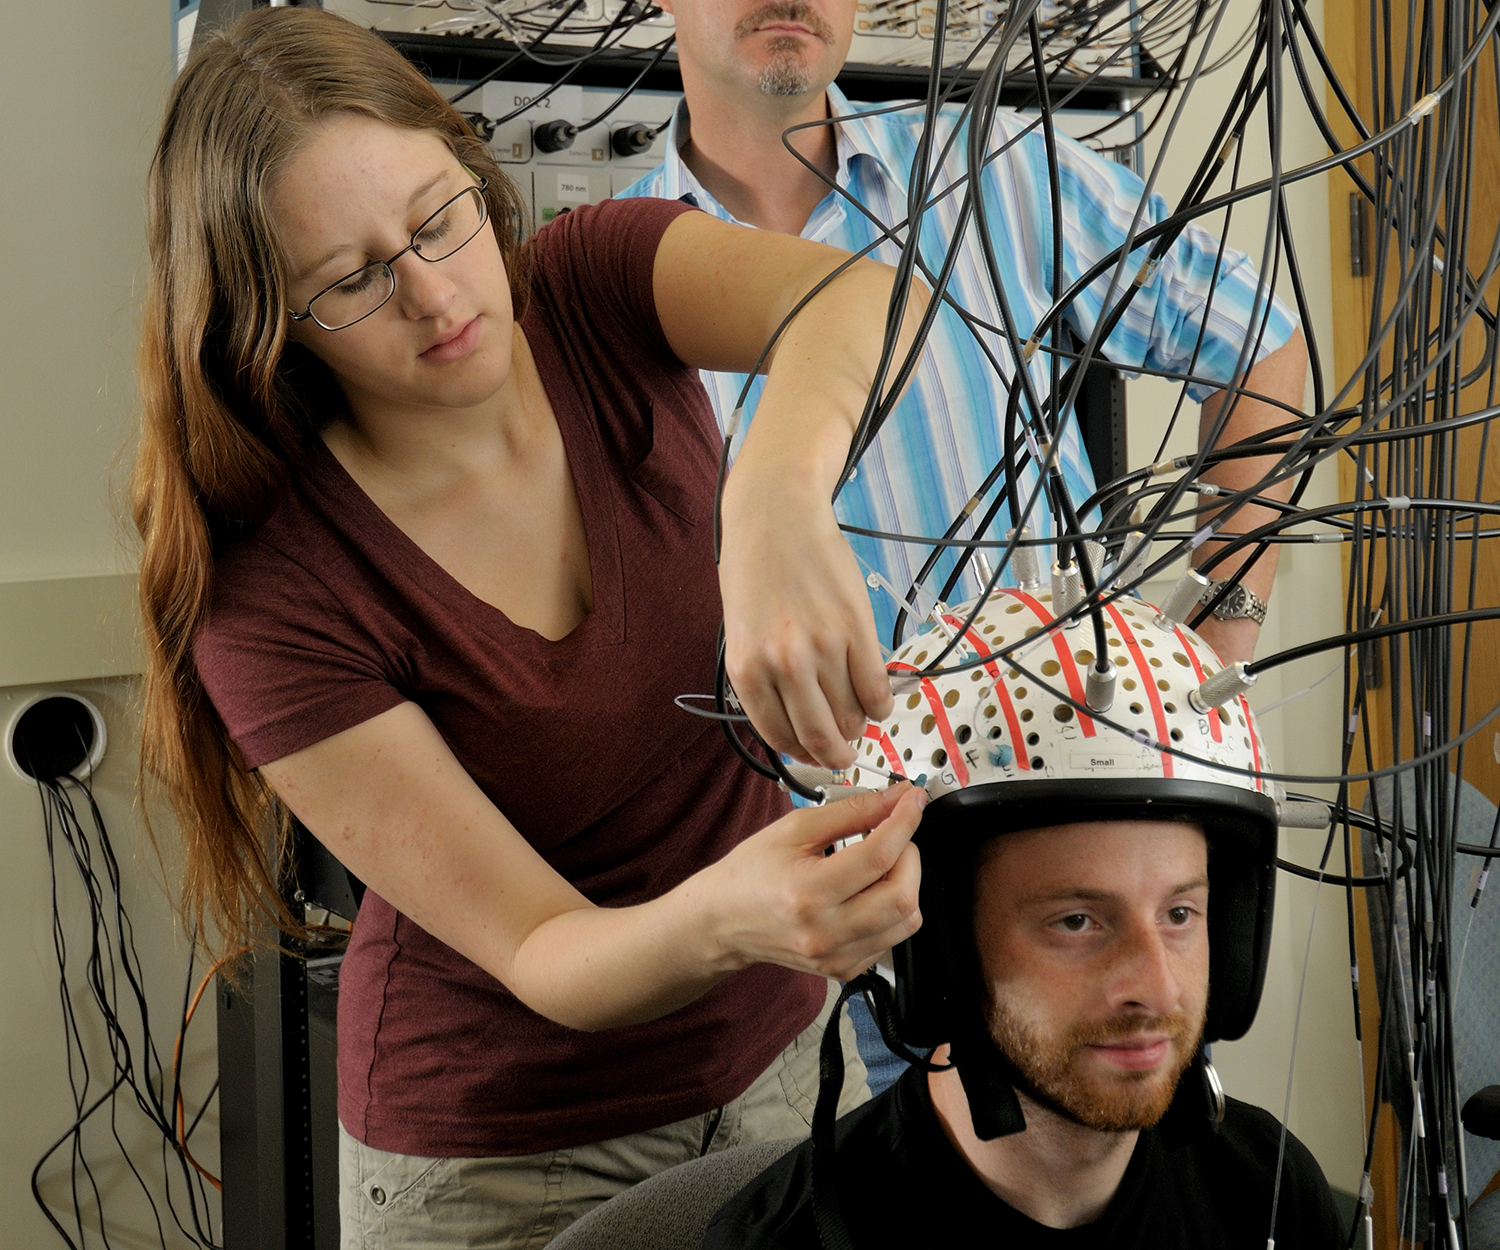 A researcher sets up diffuse optical imaging to measure the brain, which means attaching wires to a cap